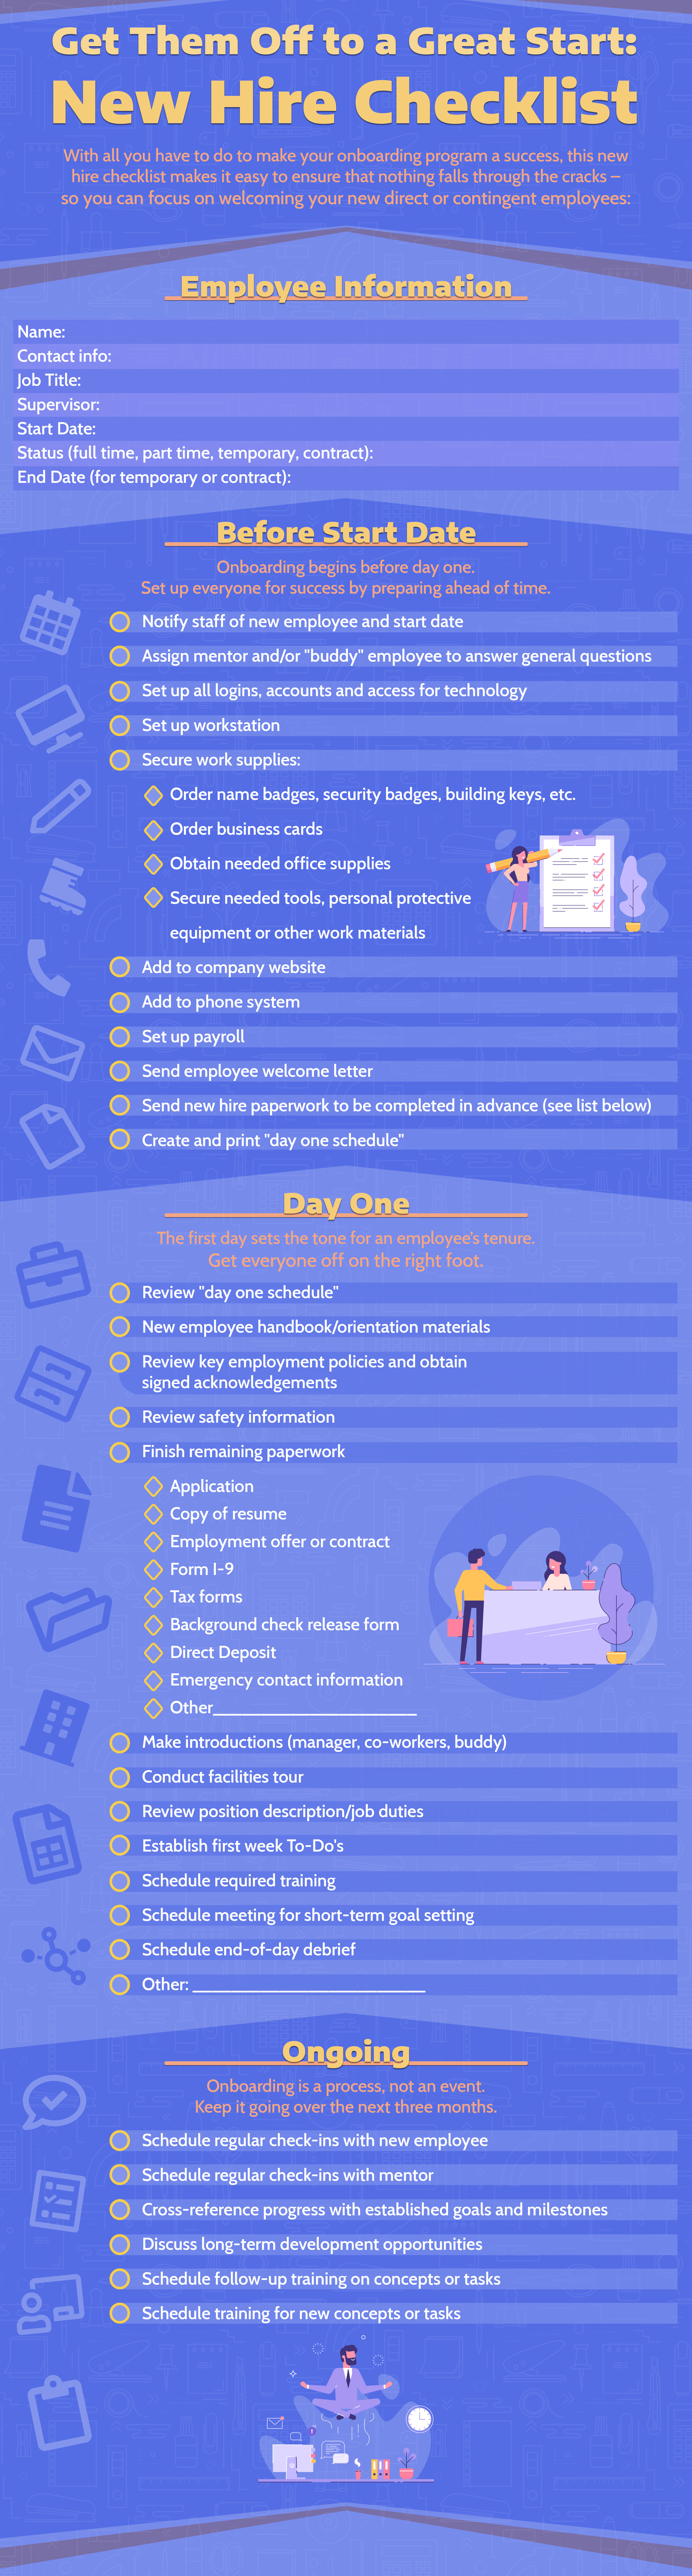 Get Them Off to a Great Start: New Hire Checklist